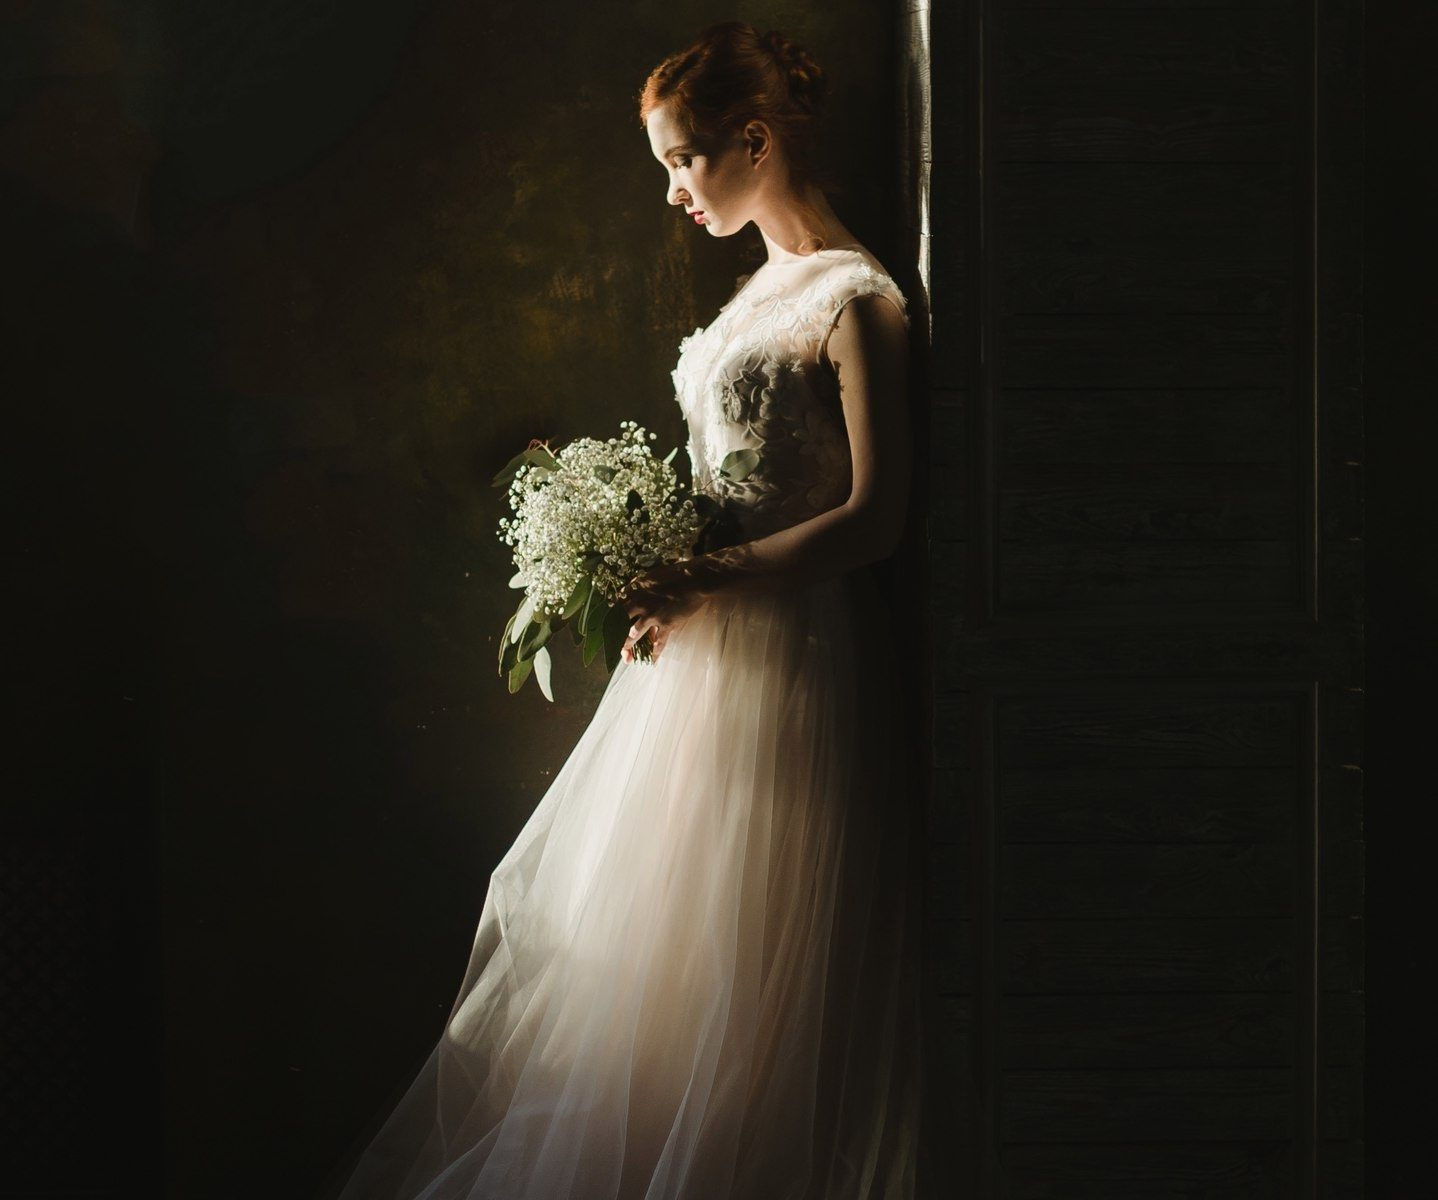 Wedding Gowns Calgary: Choose Your Unique Wedding Gowns & Dresses